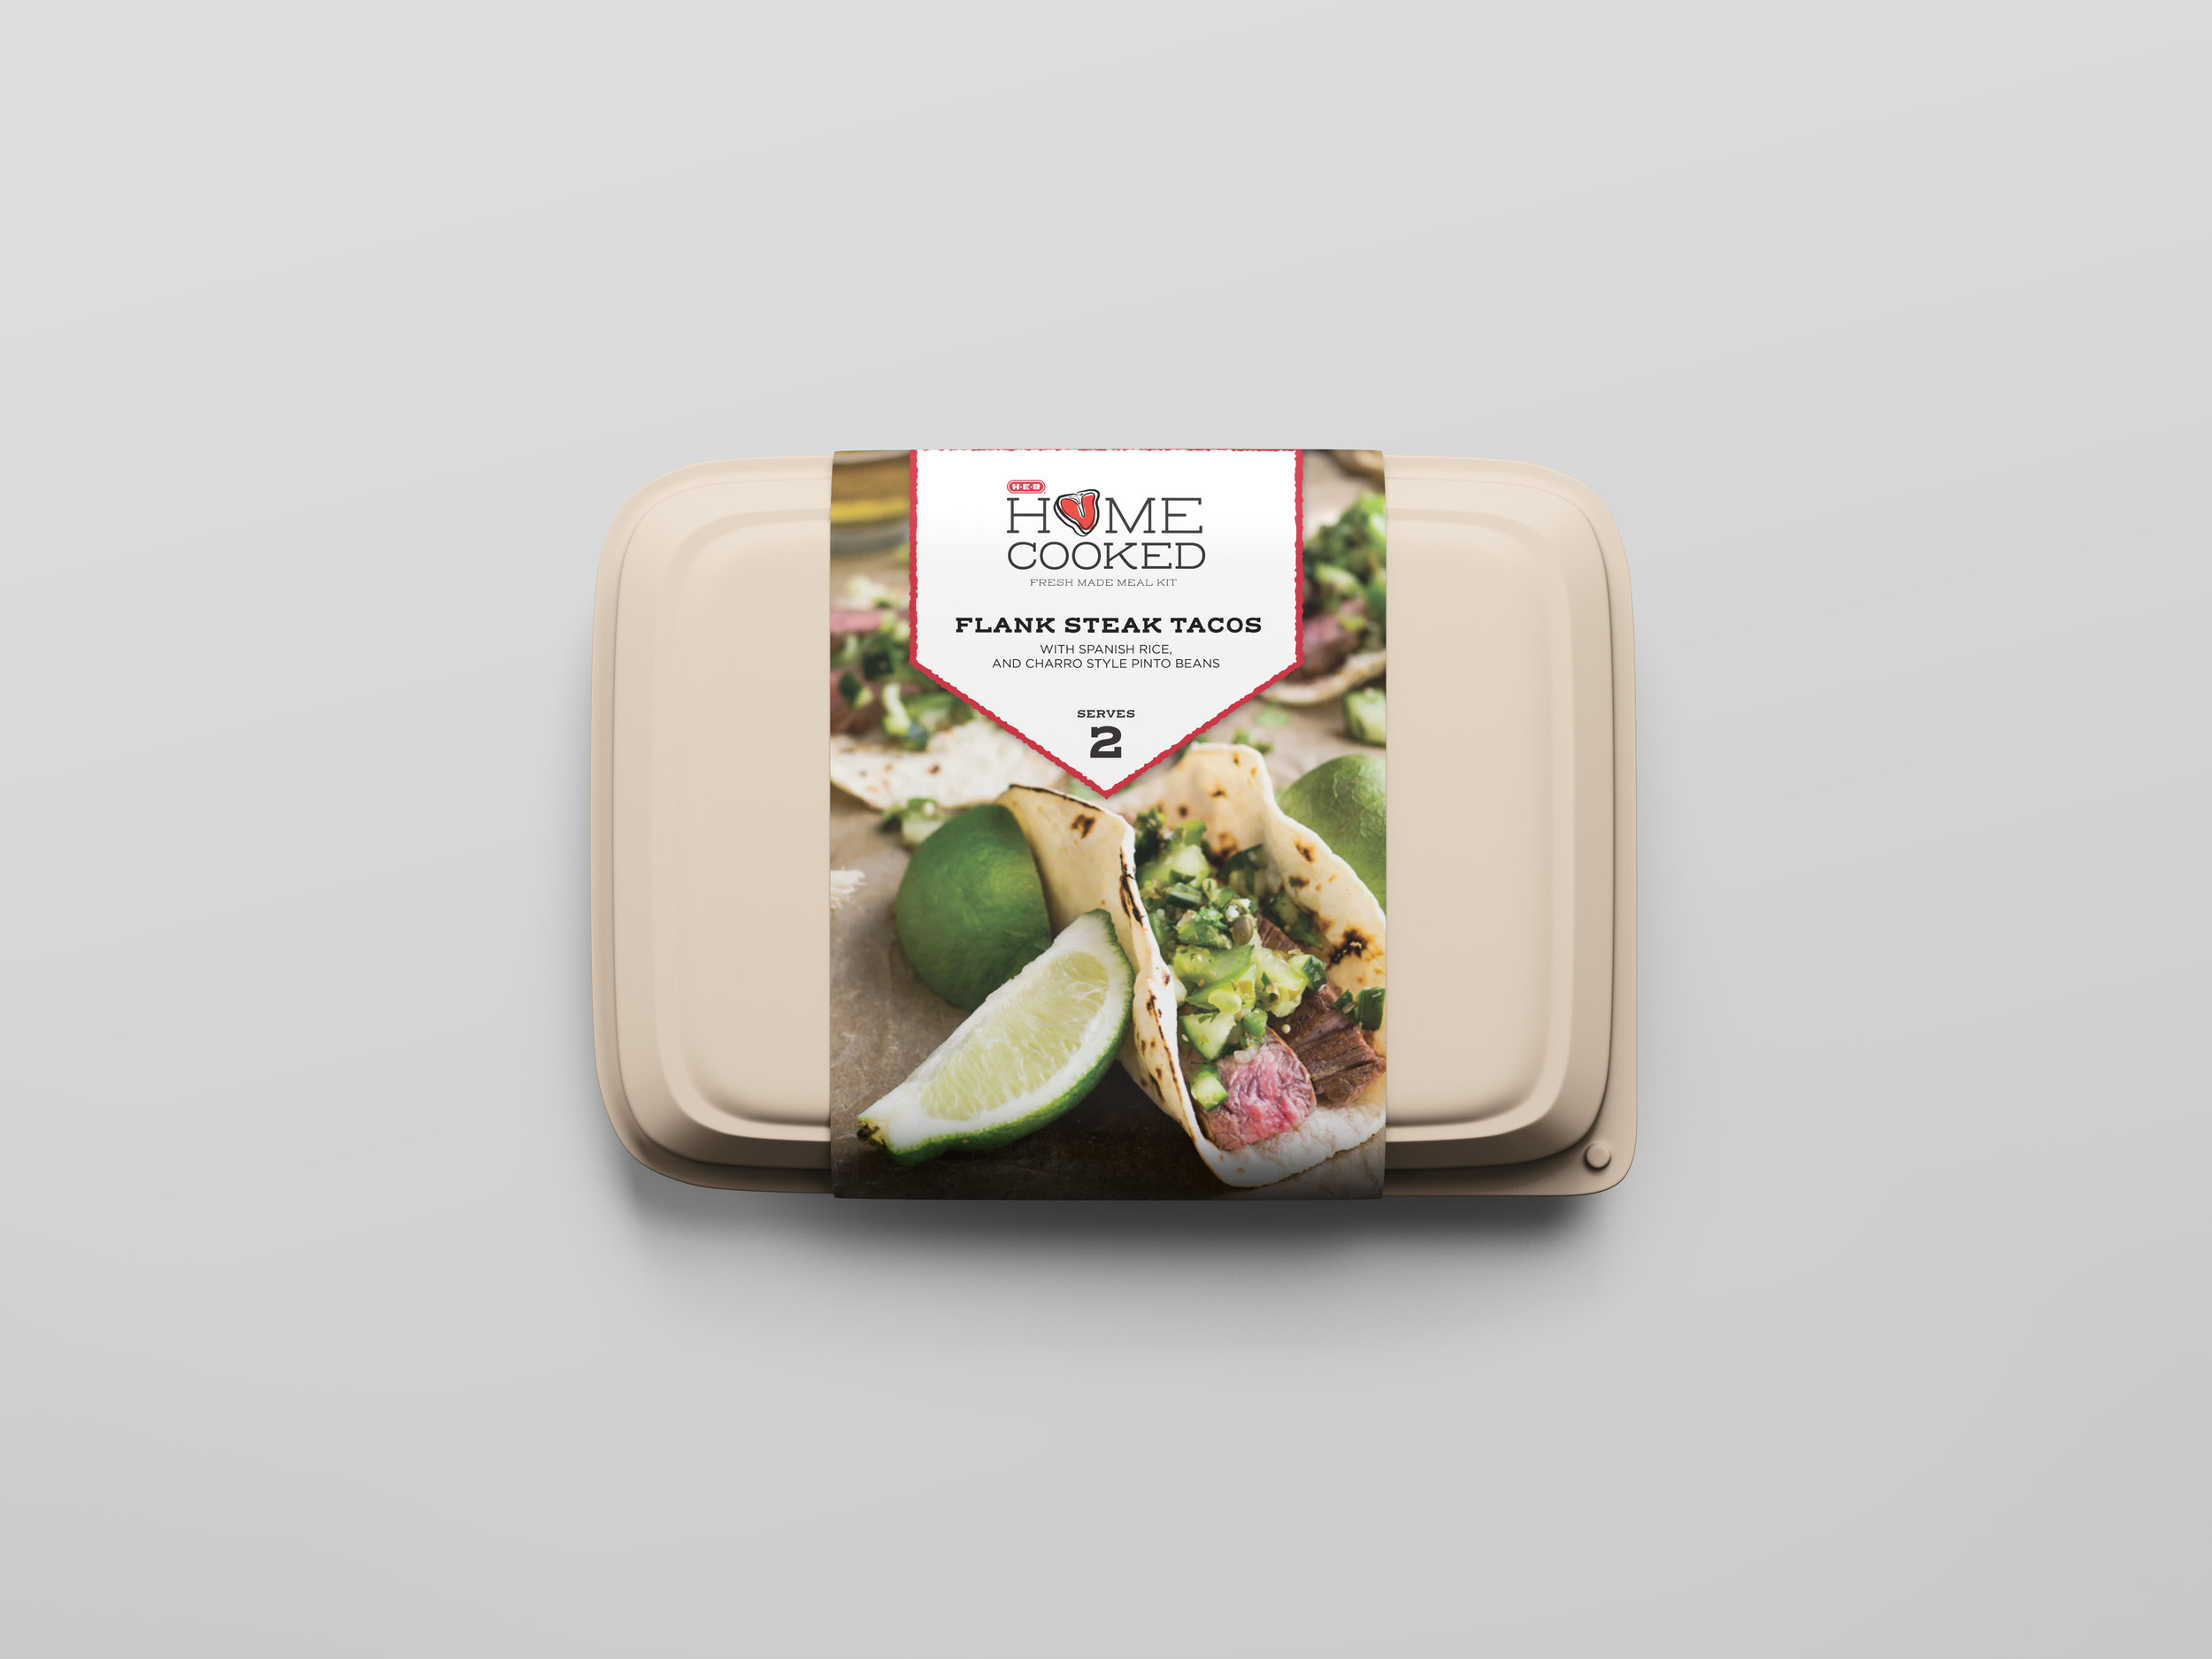 Medium sized packaging. To be used for meals serving 2-3 servings.